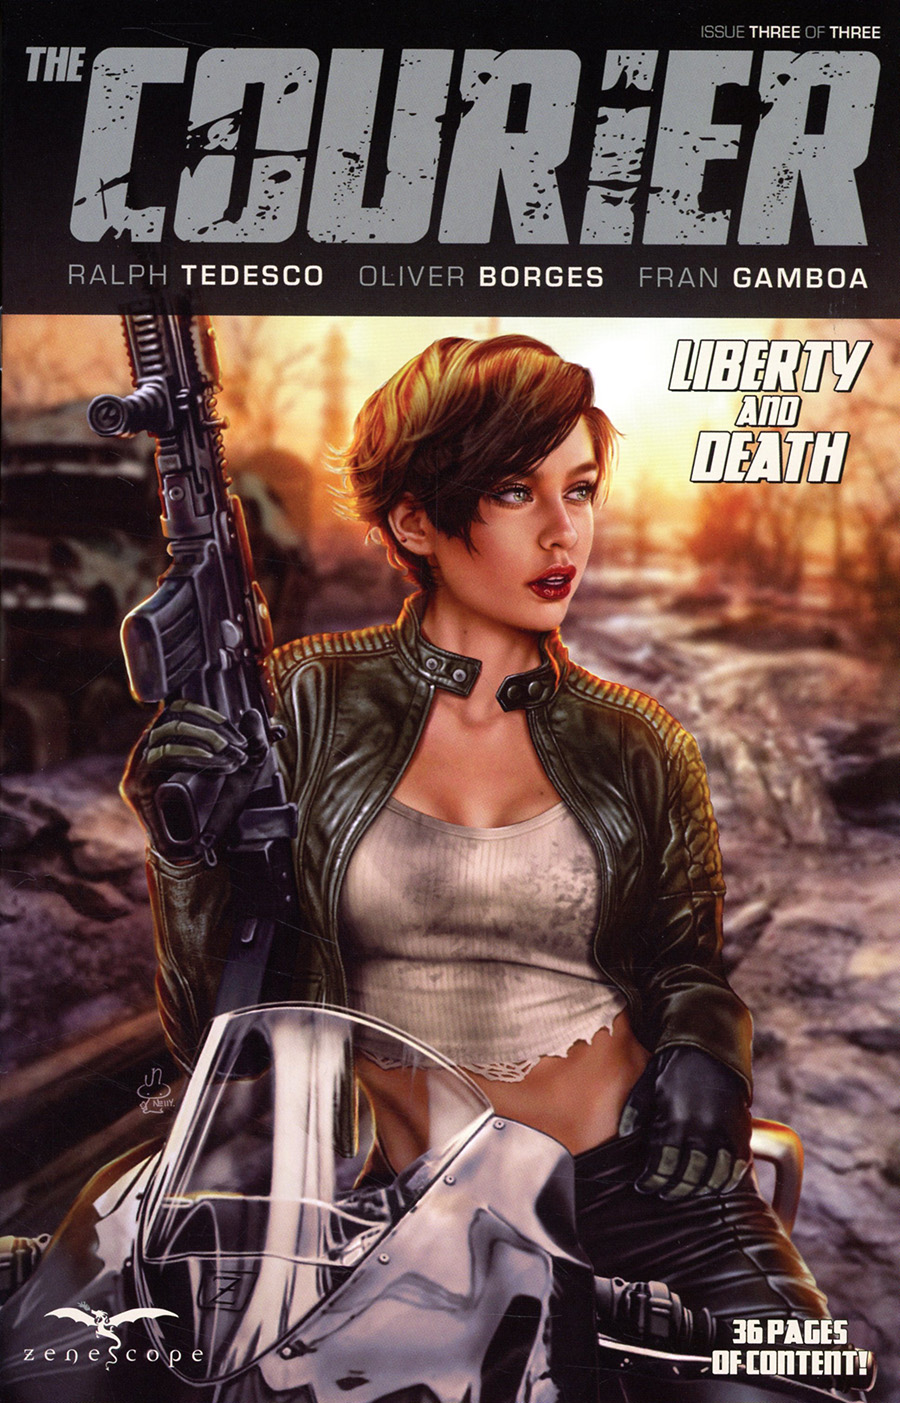 Courier Liberty And Death #3 Cover B Nelly Jimenez